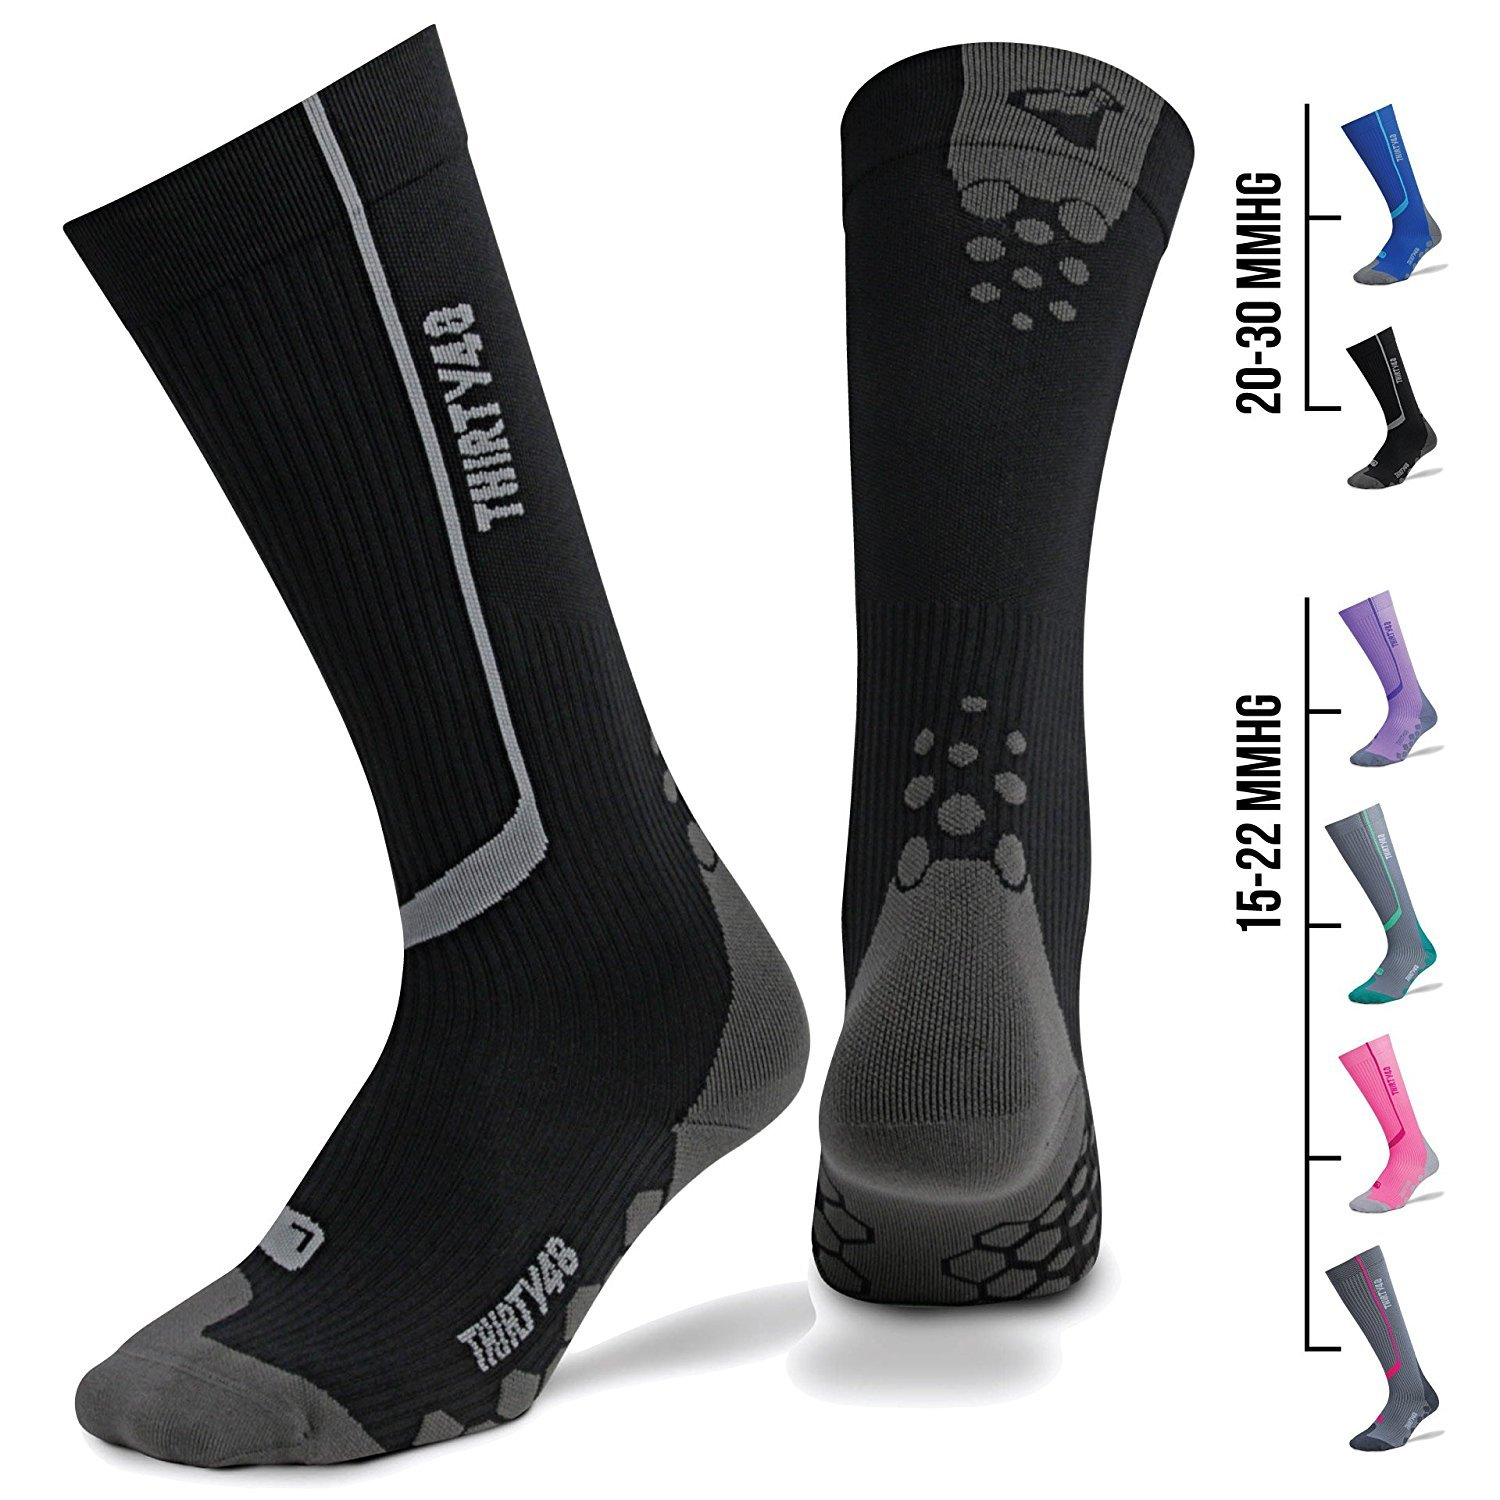 Thirty48 -''The Sock Geeks'', CS Series Calf/Shin Splint Guard Graduated Compression Sleeves-Sock ,Black/Gray ,Large